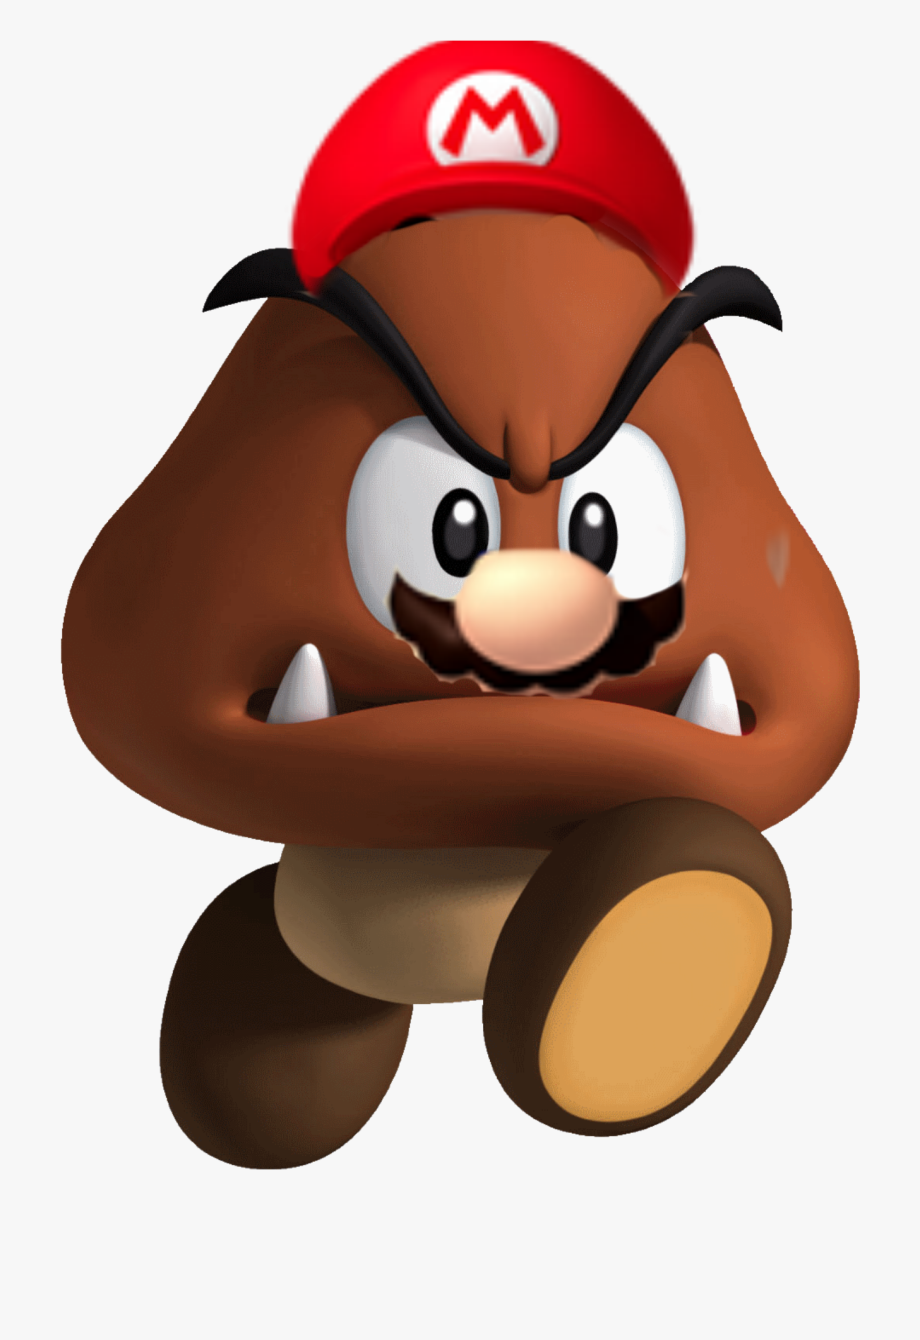 Brown Mushroom Super Mario Transparent Cartoon Free Cliparts